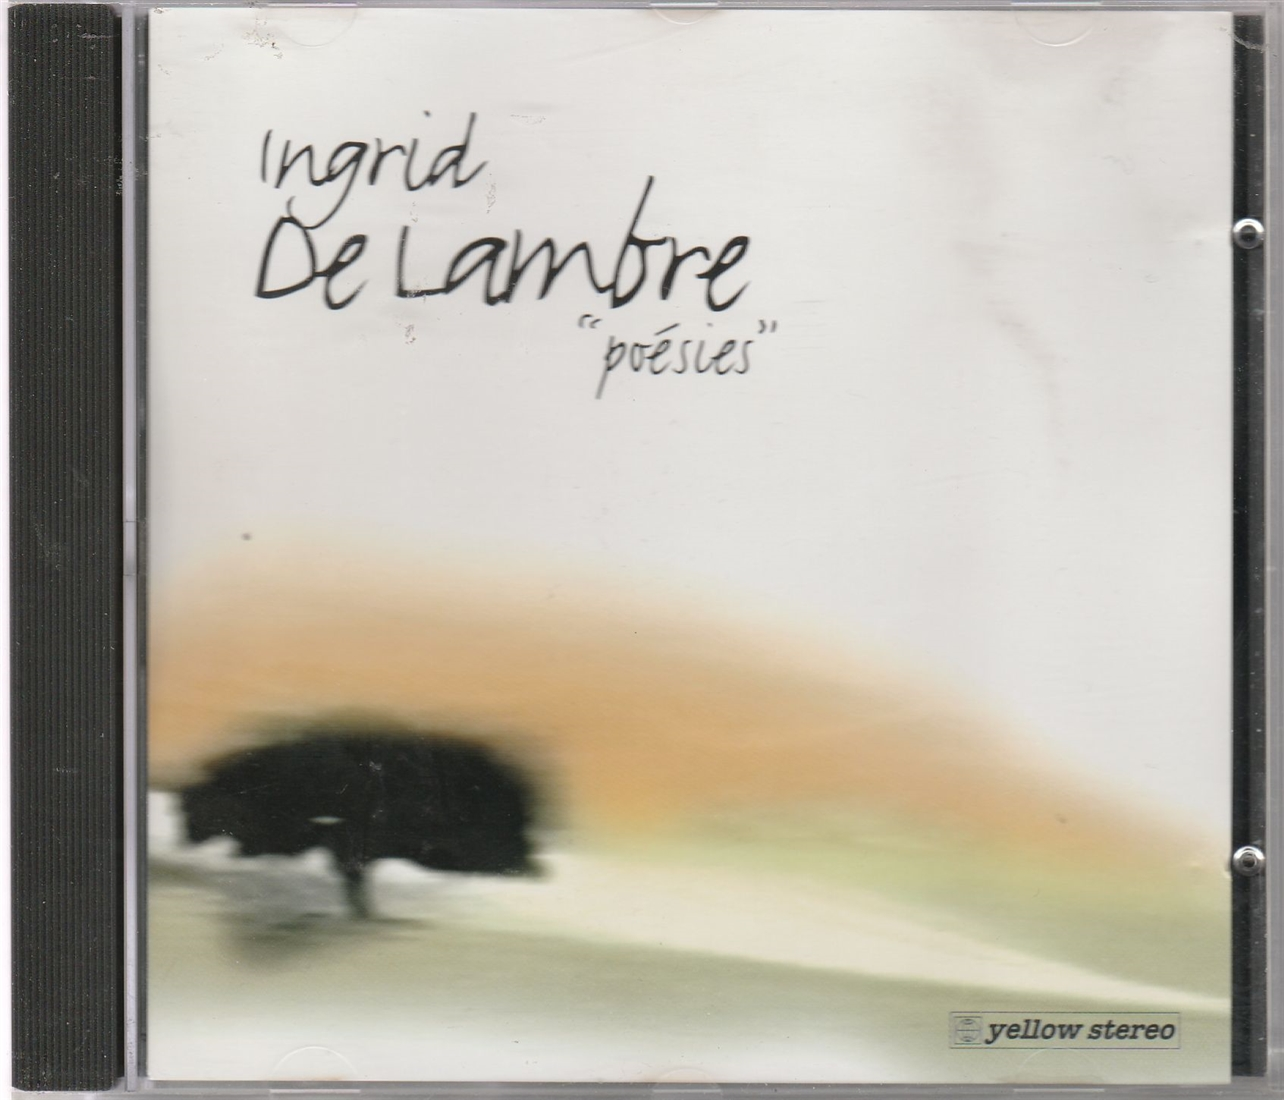 INGRID DE LAMBRE - Poésies - CD Maxi